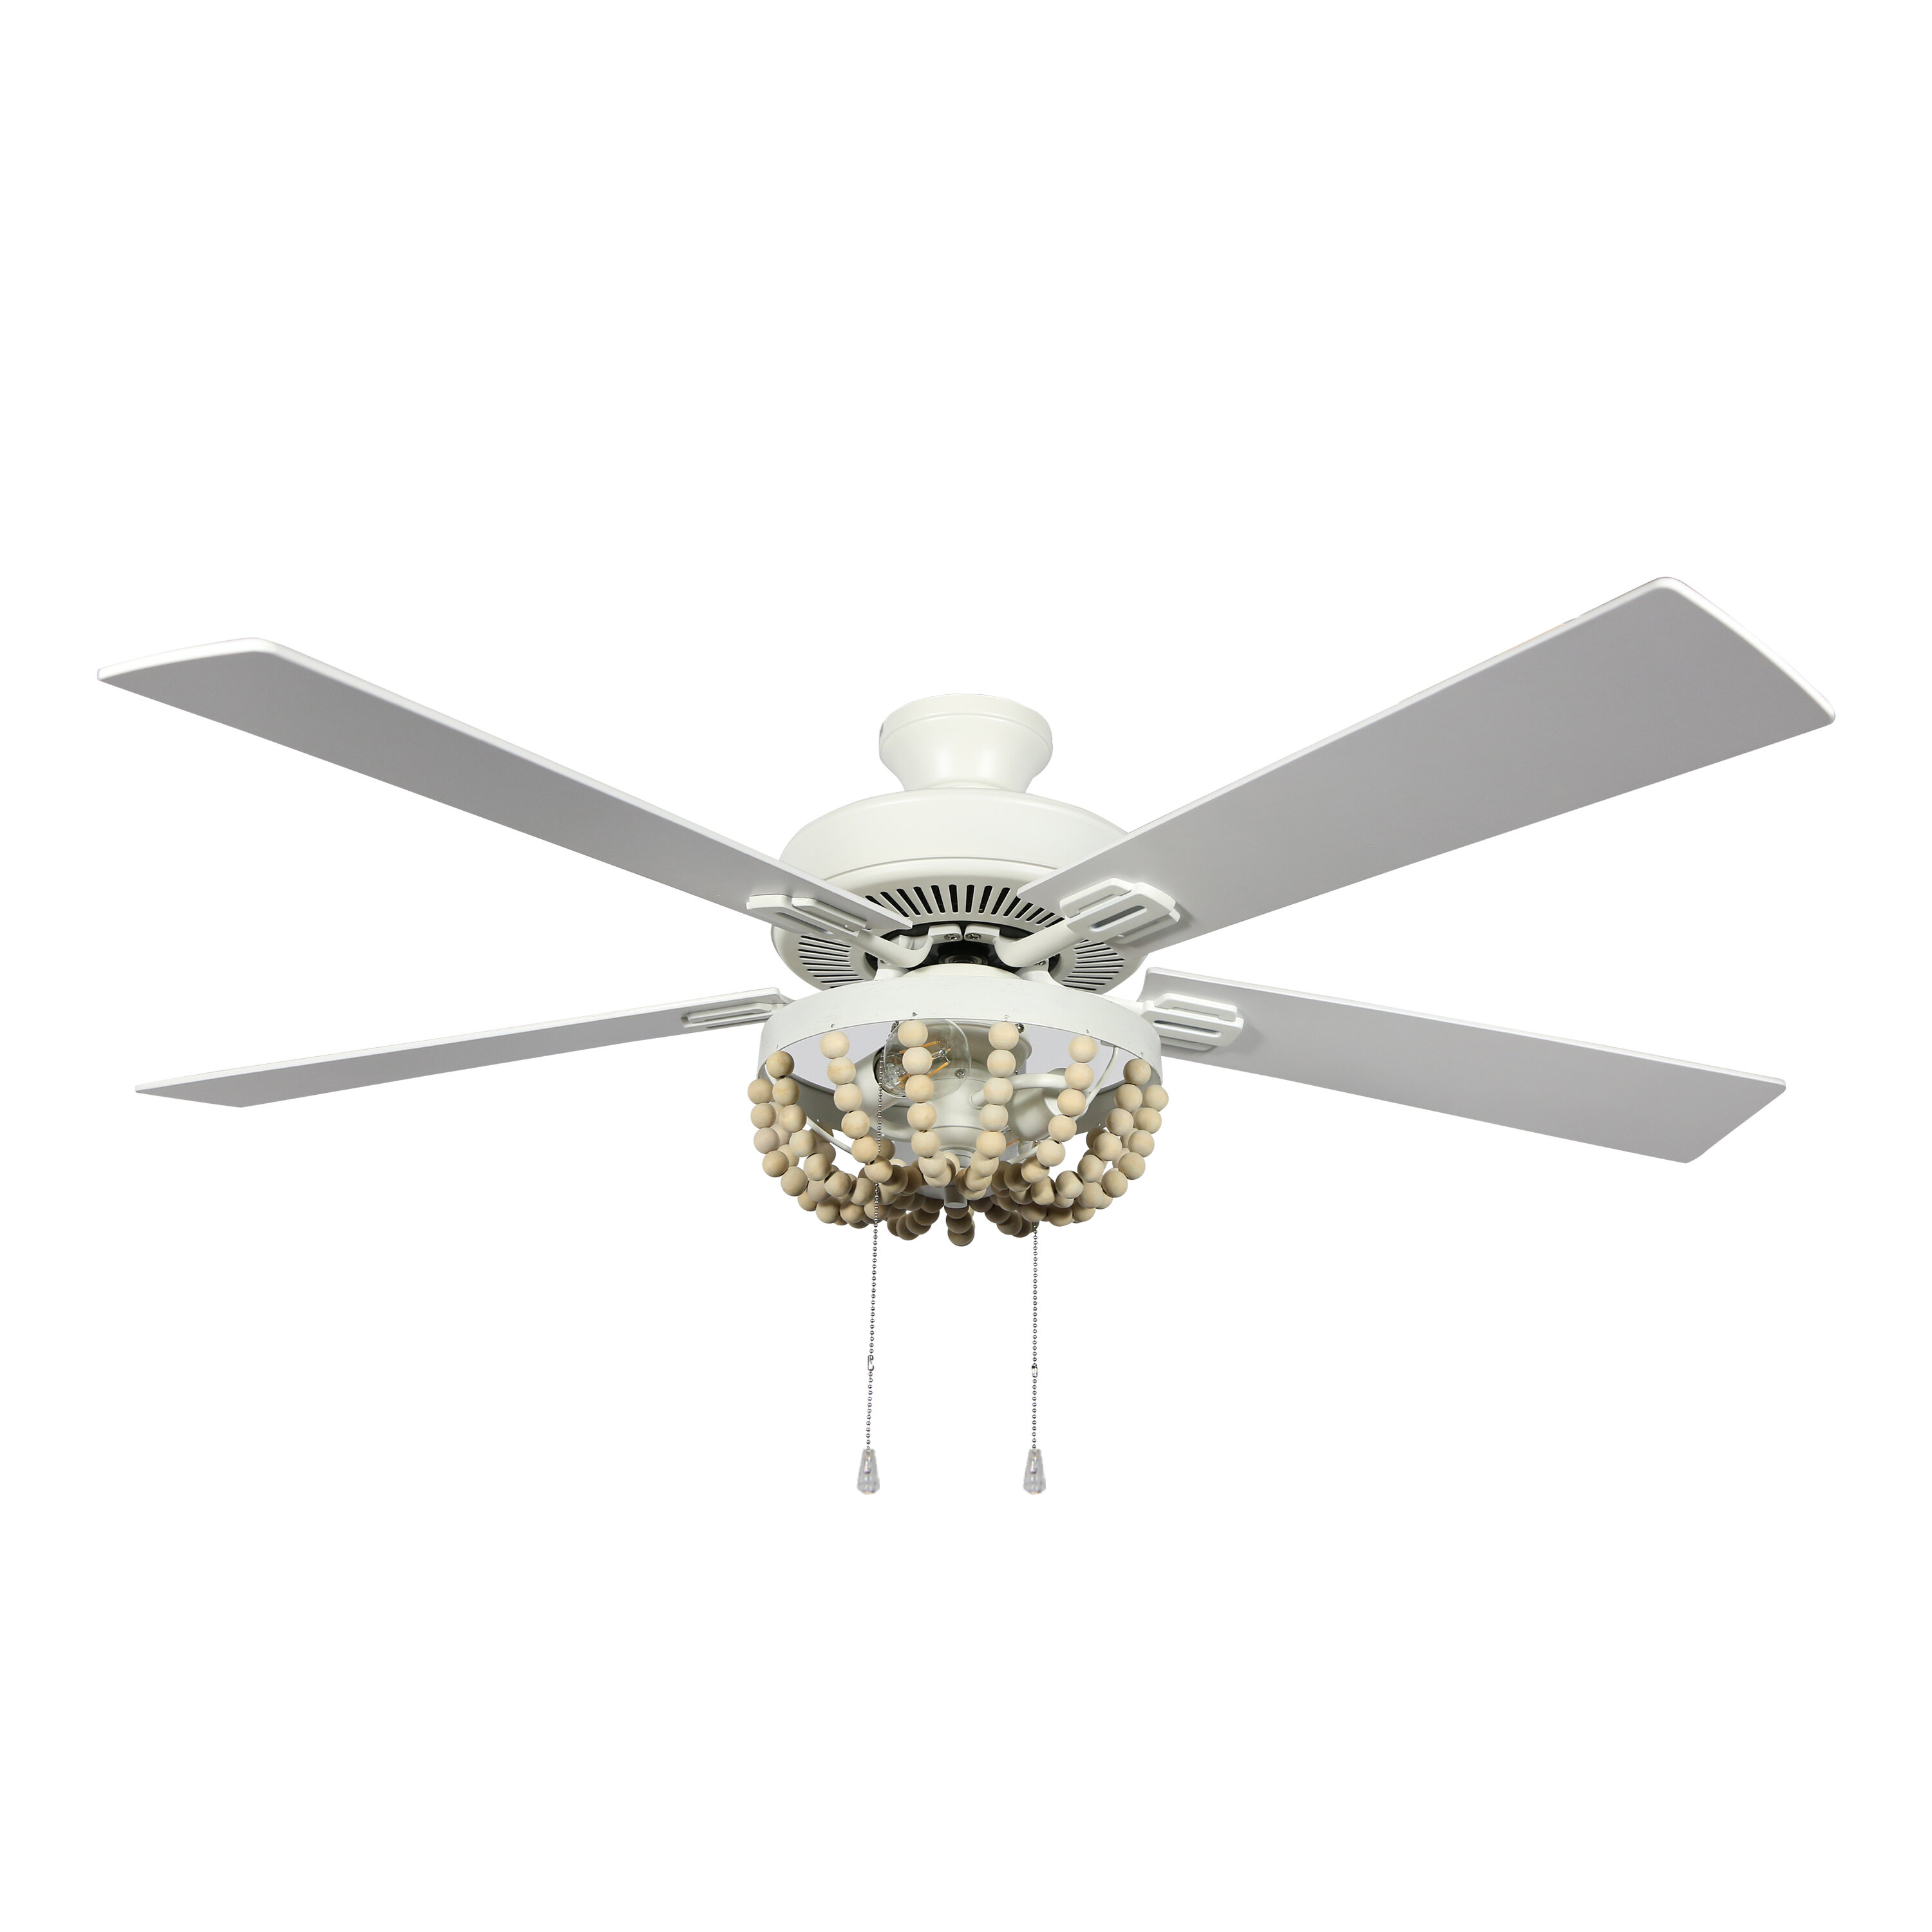 52 Anshul 5 Blade Standard Ceiling Fan With Pull Chain And Light Kit Included Reviews Joss Main